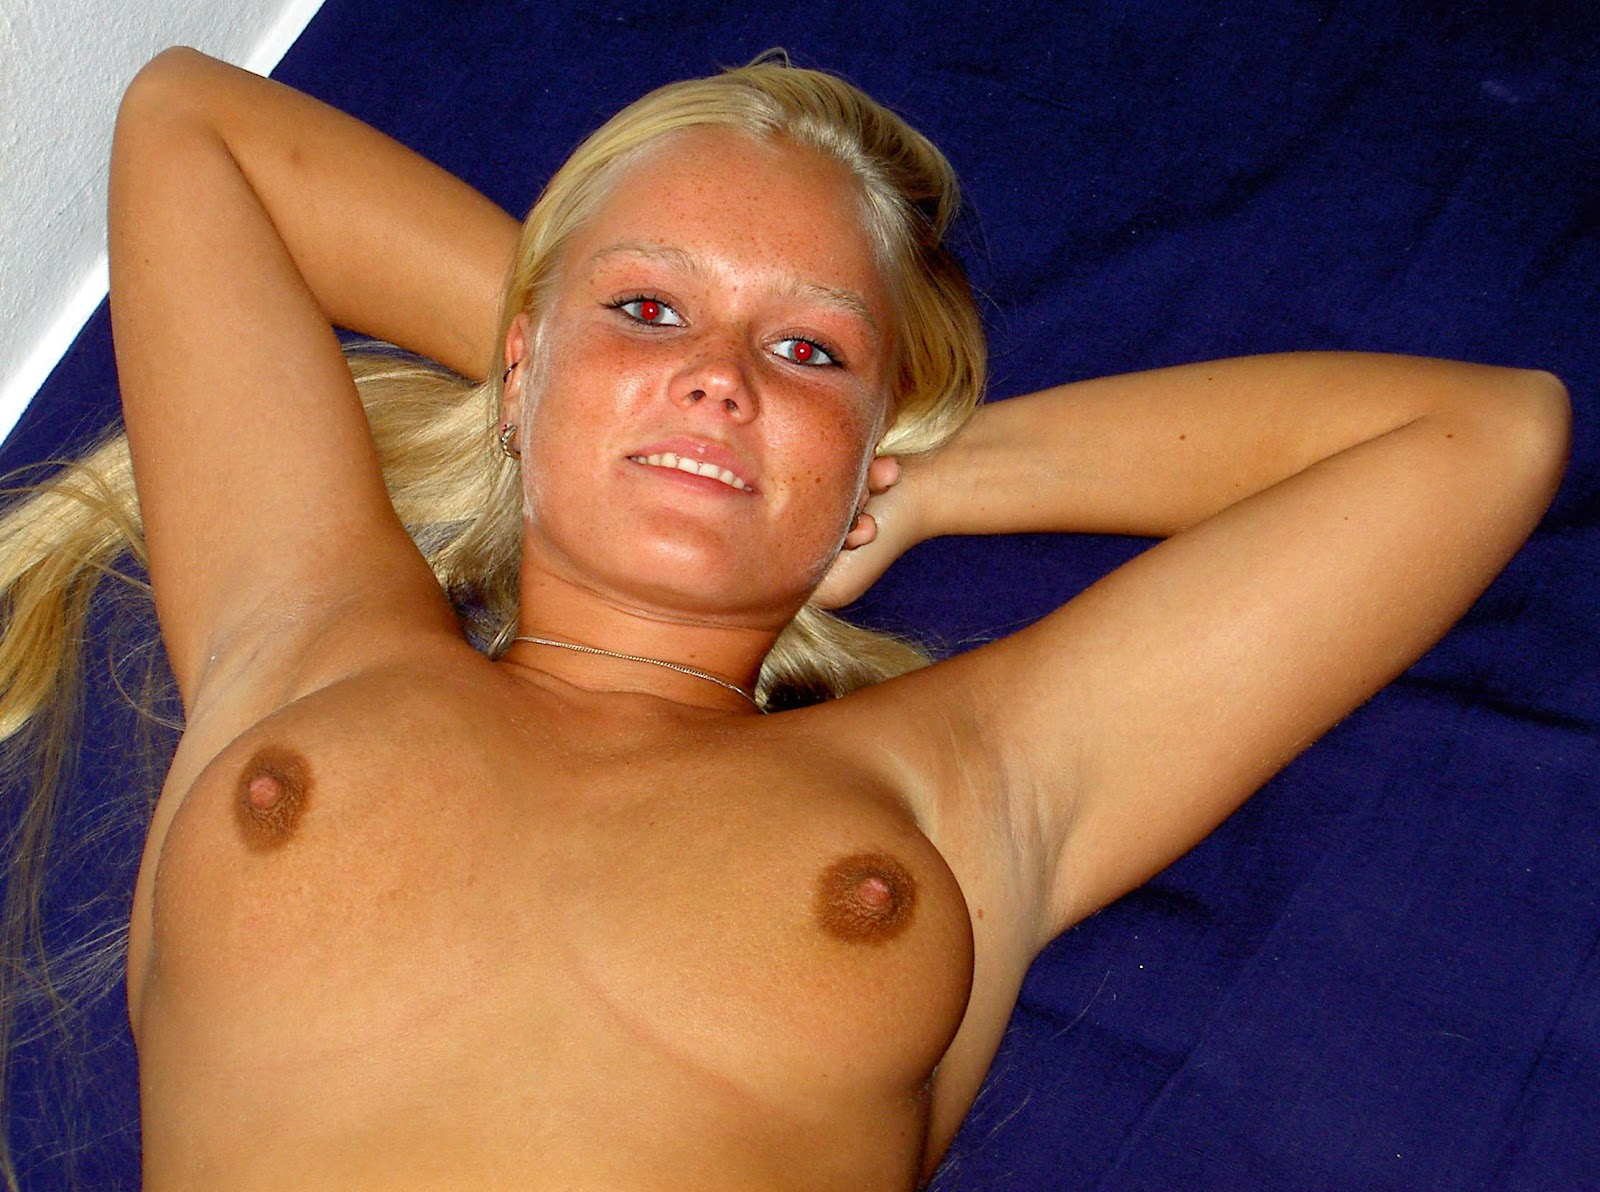 babes with nude armpits